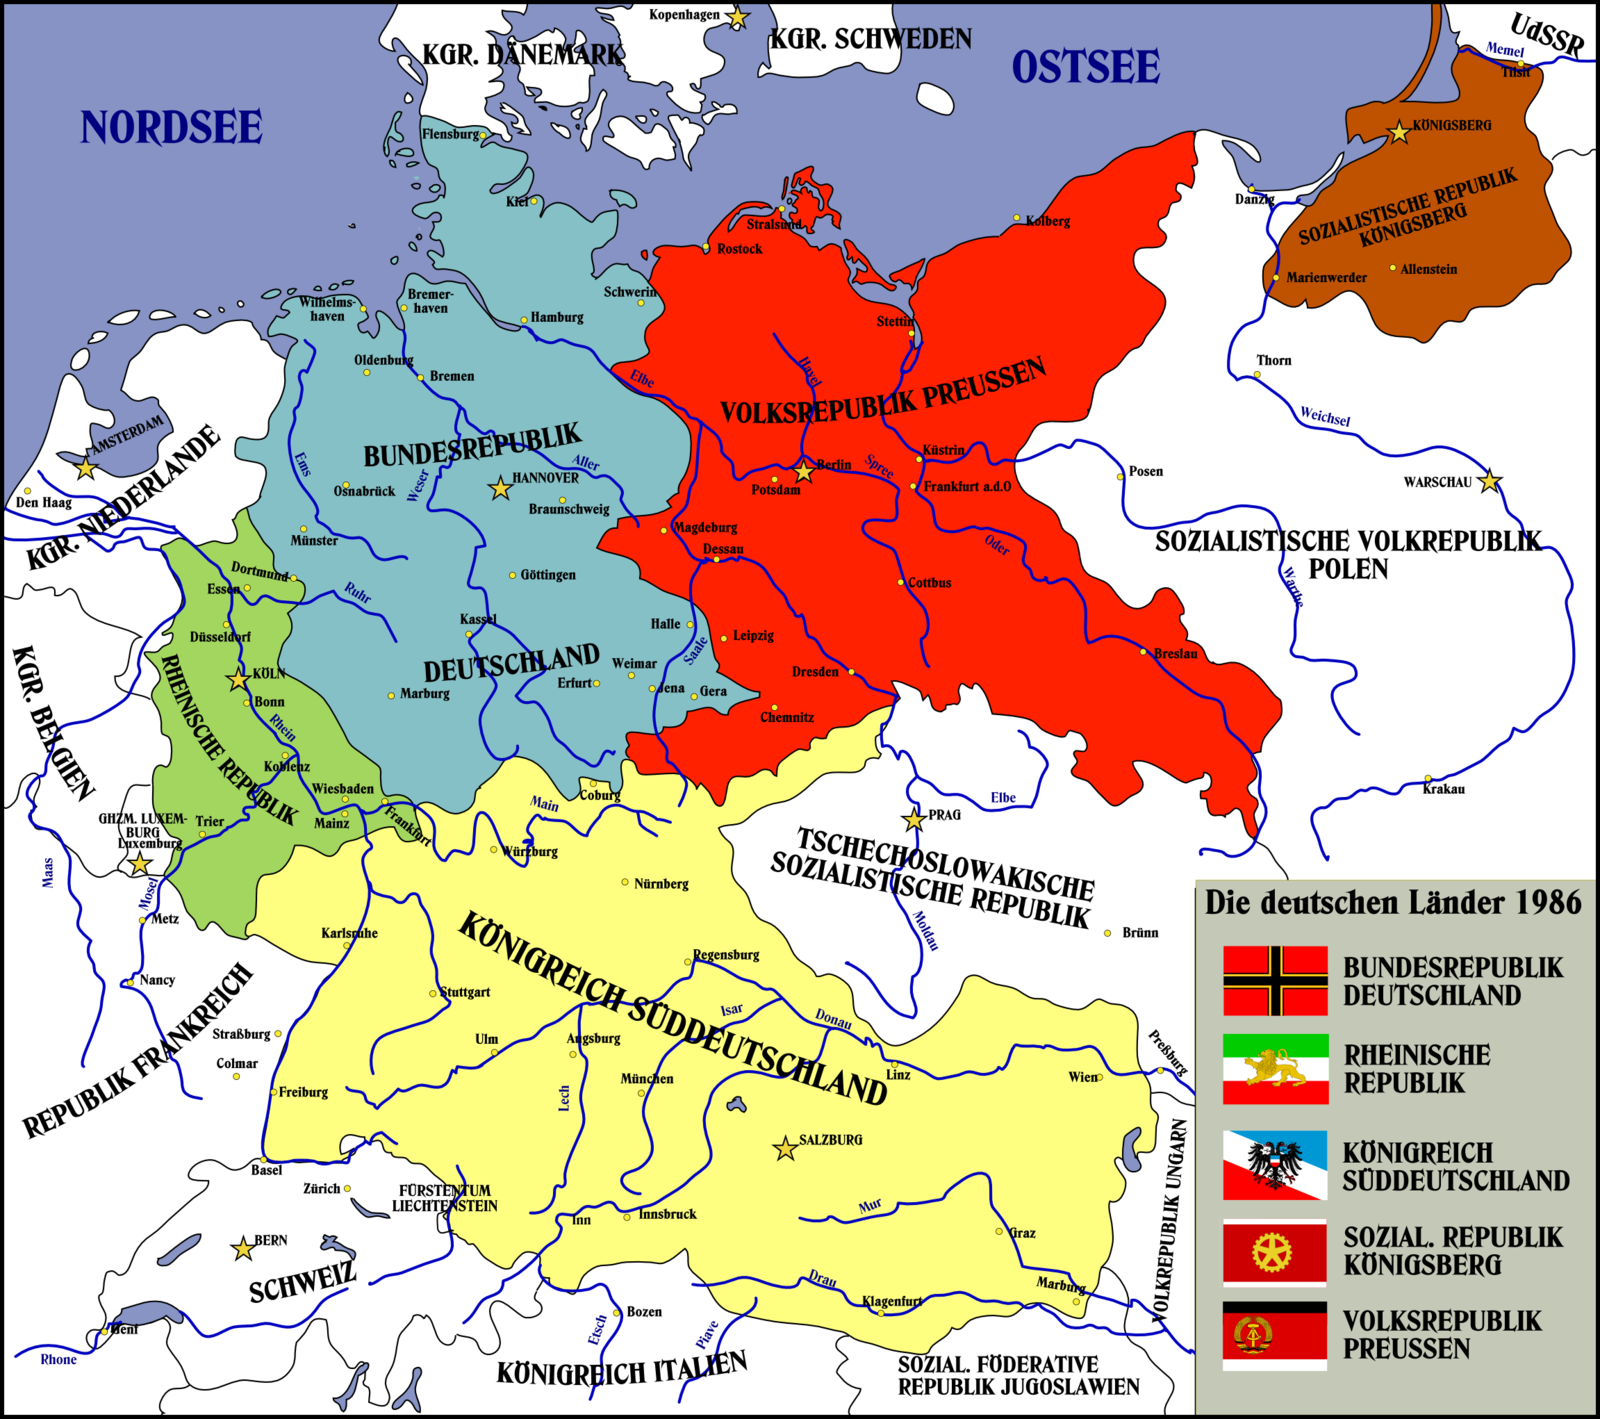 Pomerelia Cerca Con Google Ucrony And Alternative History - Germany map world war 2